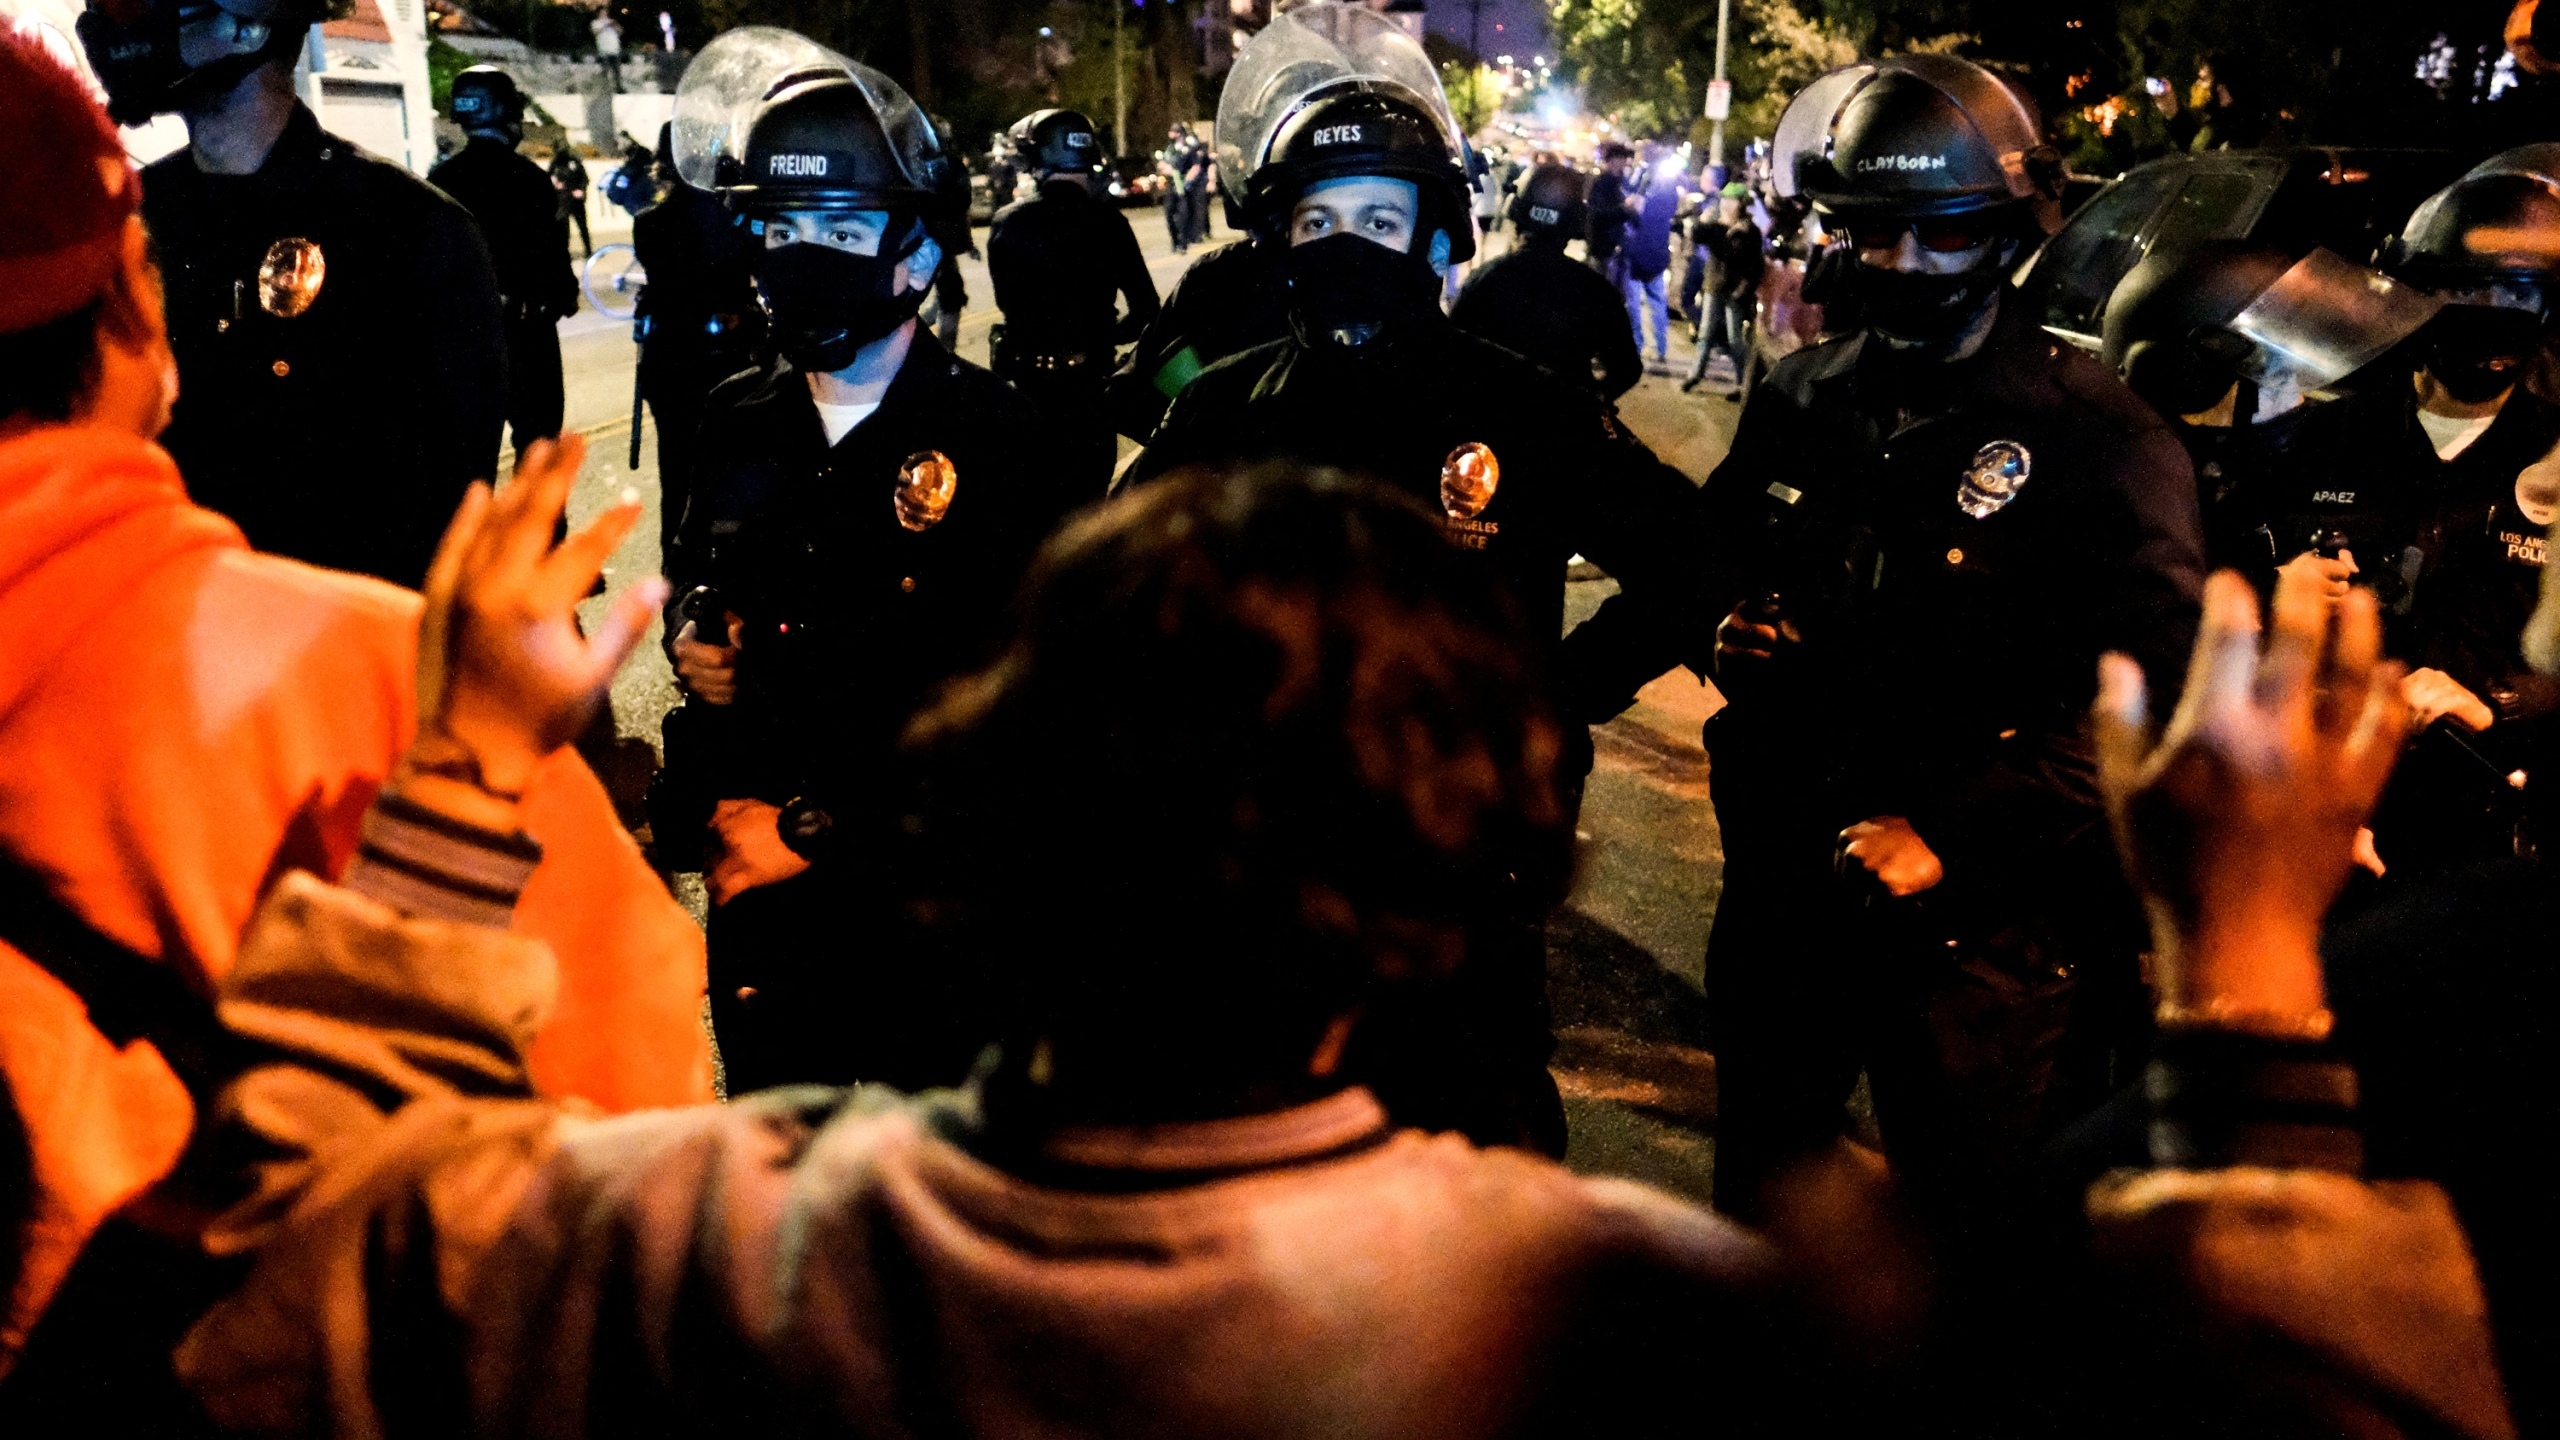 Activists and supporters of residents of a homeless encampment confront police at Echo Park Lake in Los Angeles late on March 24, 2021, ahead of a planned and announced clean-up of the encampment. (Ringo Chiu / AFP / Getty Images)